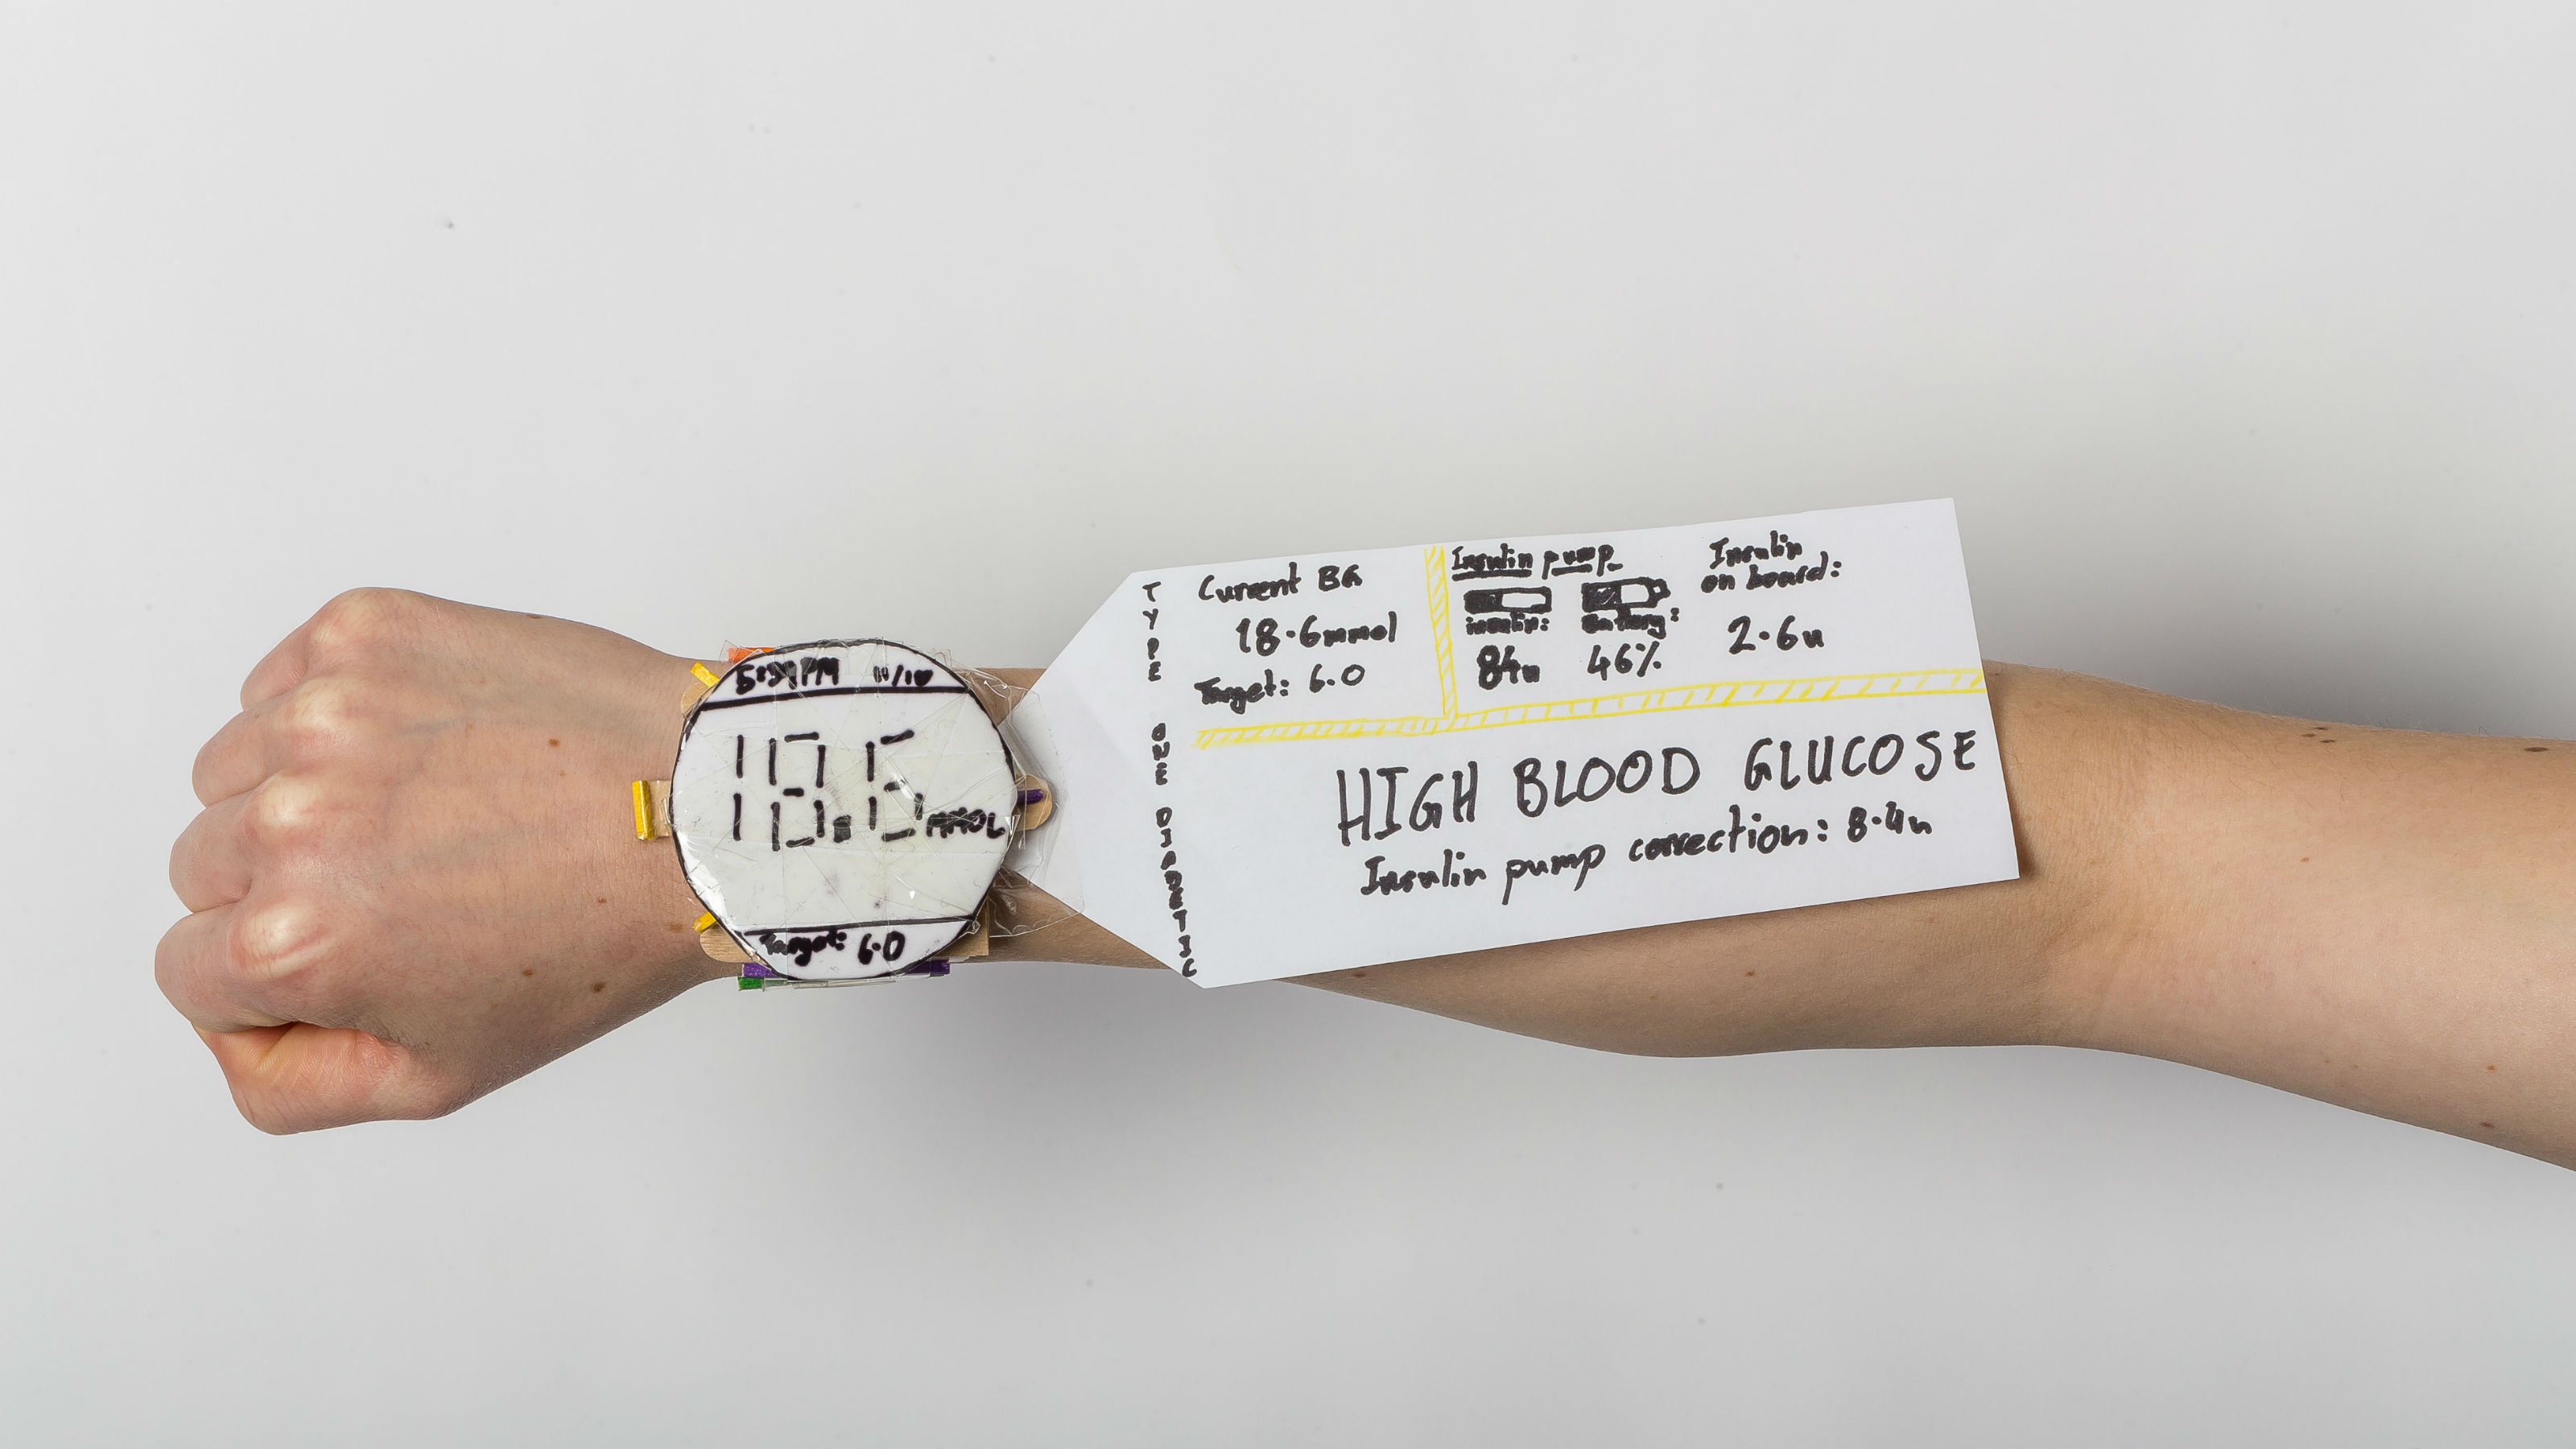 Arm wearing a watch design constructed of paper, with a paper information panel emerging from the side.